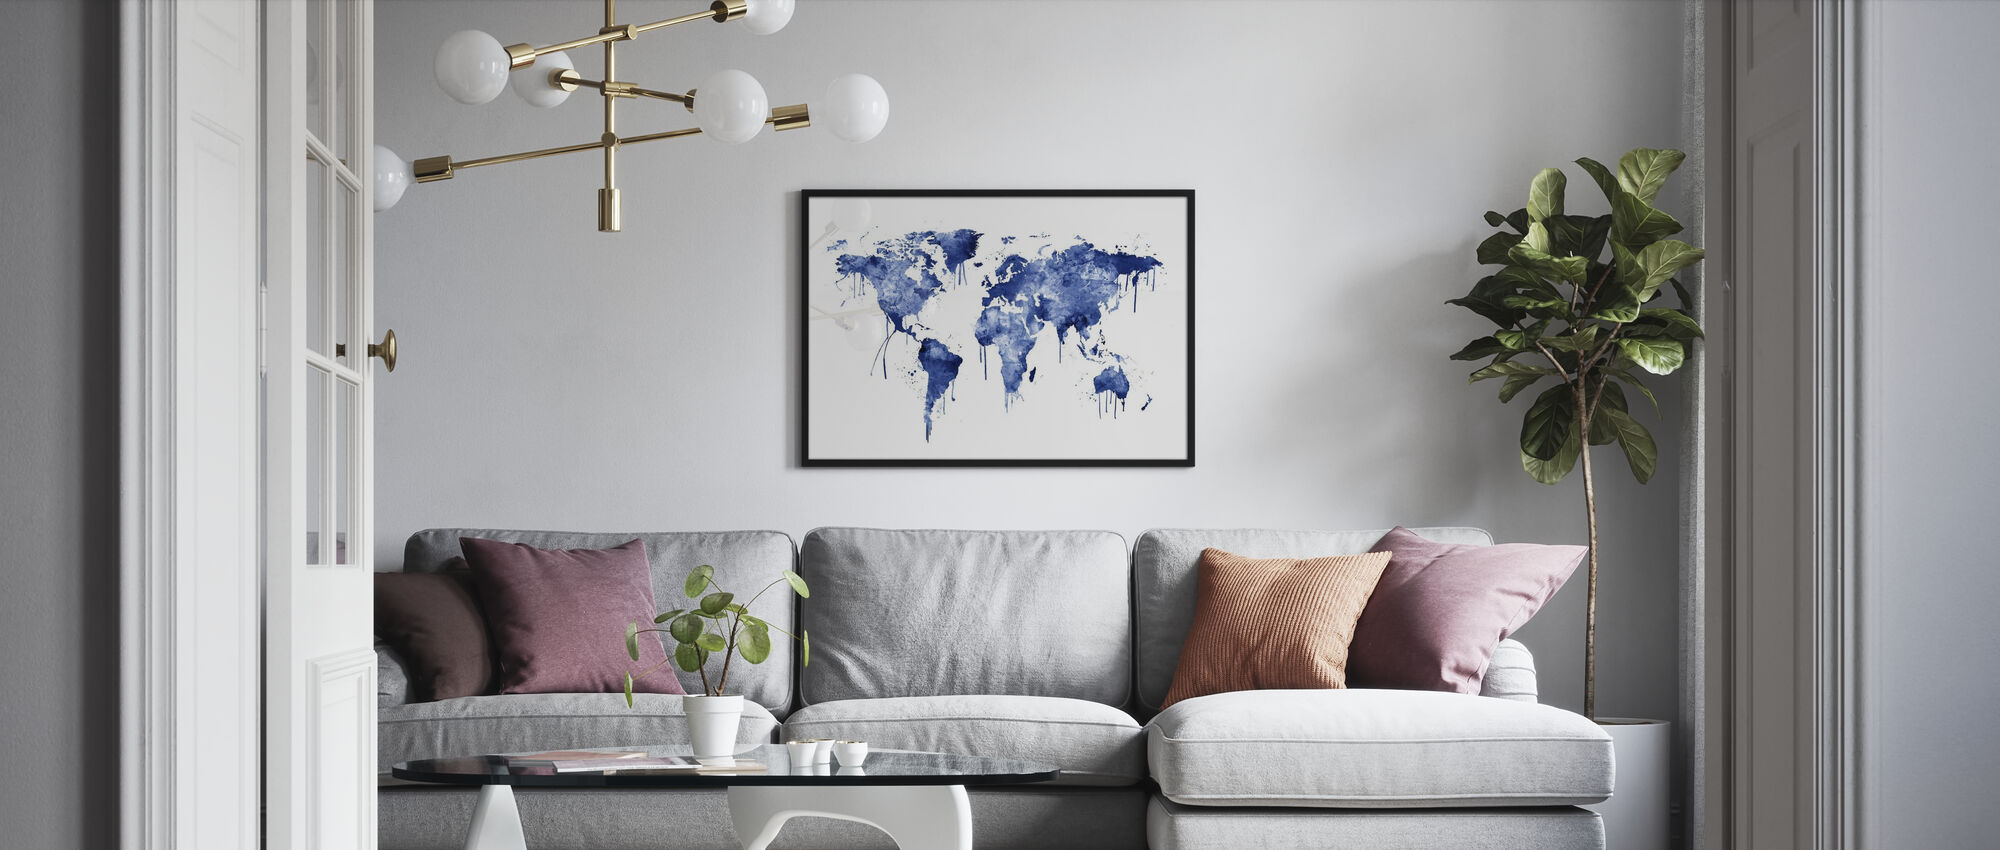 Watercolour World Map Blue - Poster - Living Room